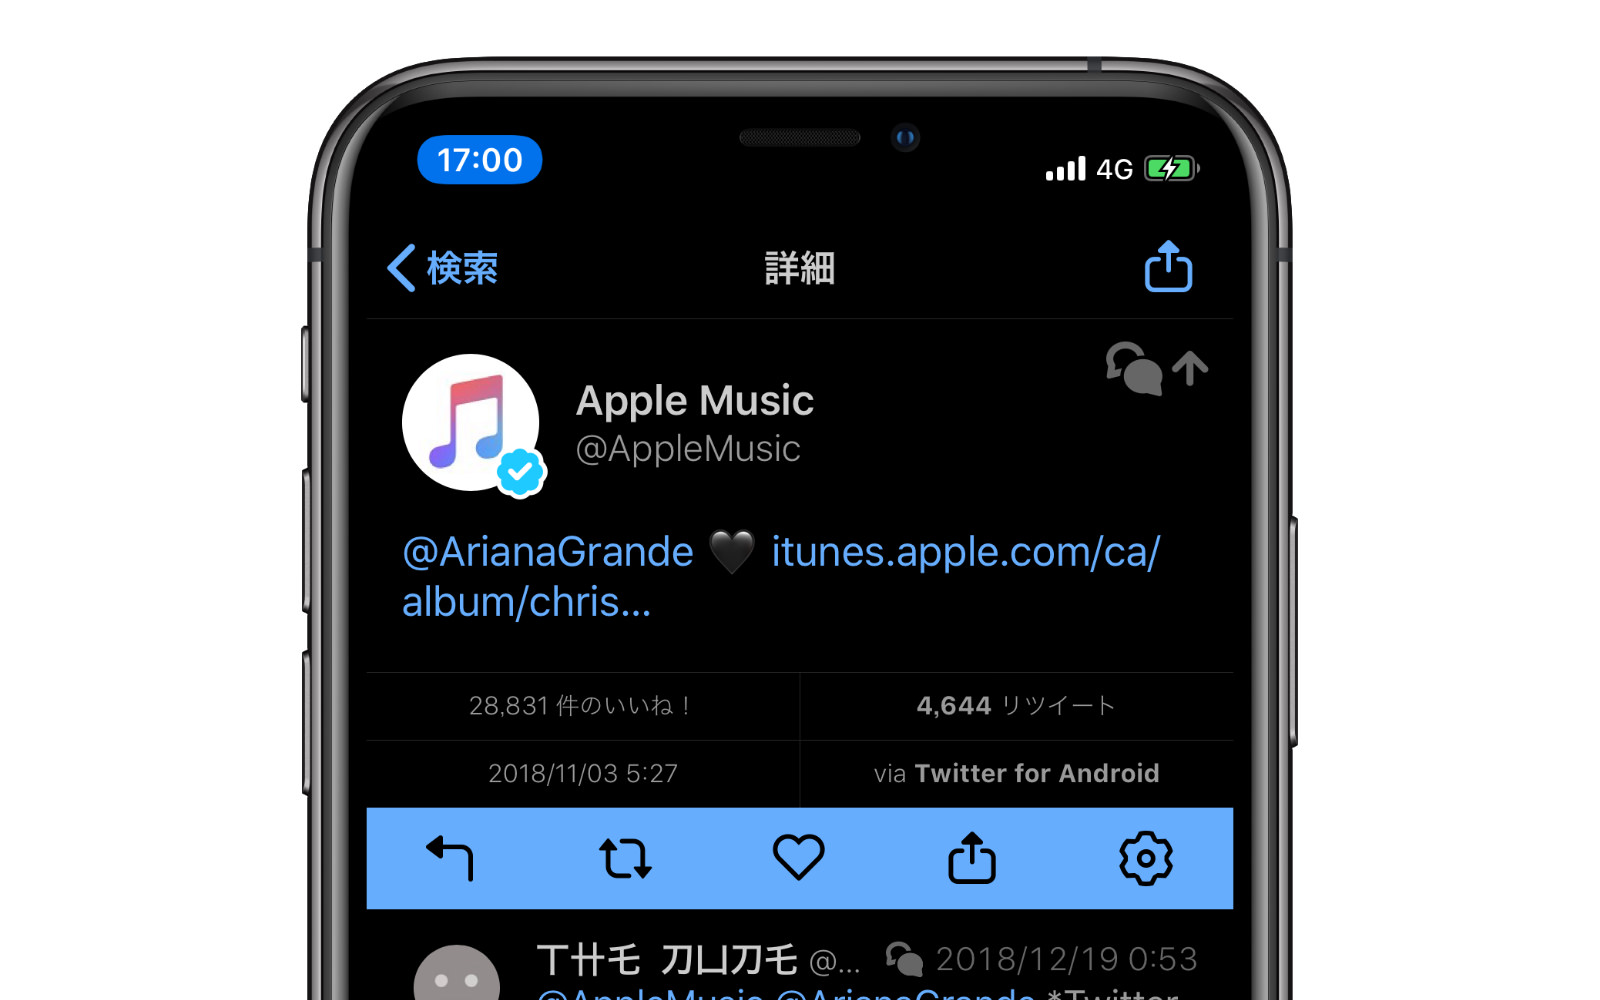 Twitter for Android Apple Music Tweetbot